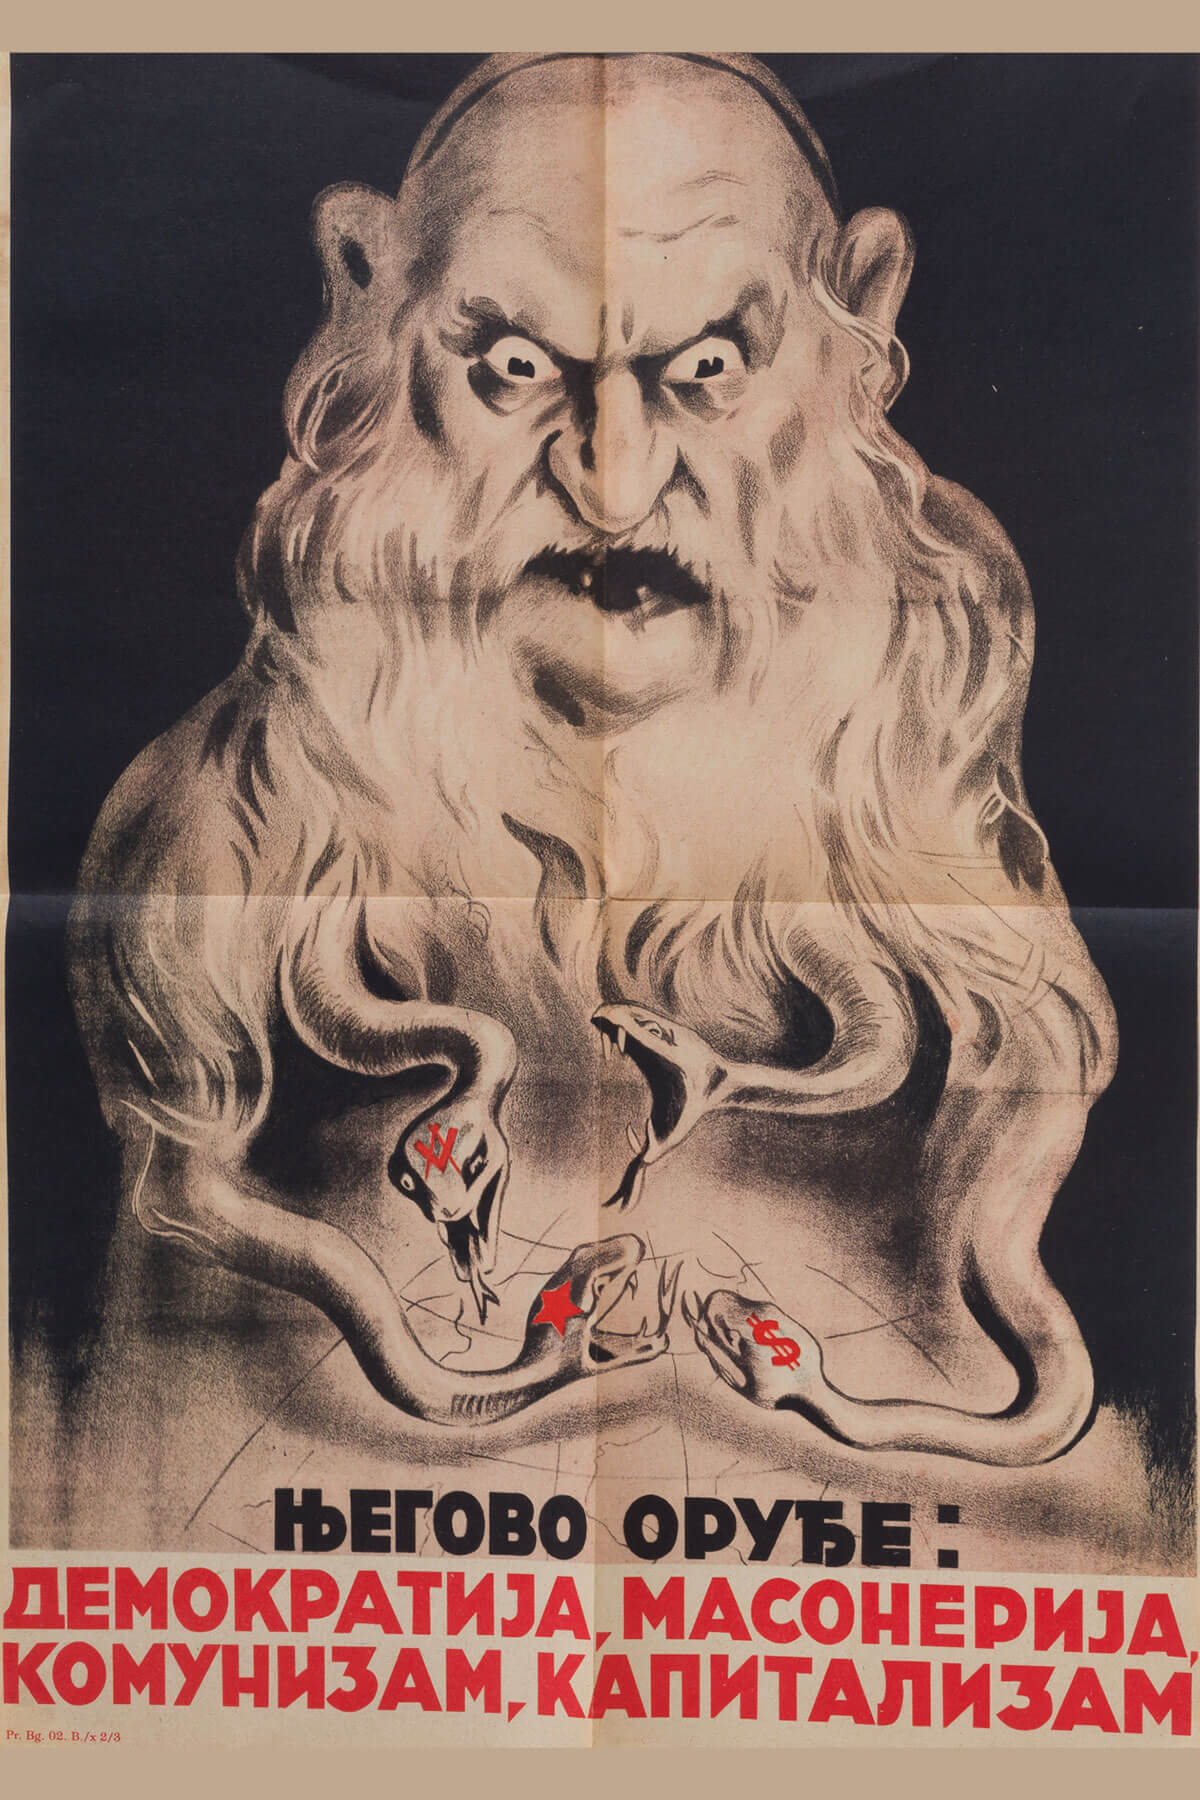 175. An Anti-Semitic Poster Published by the Yugoslav Nazi Party in Belgrade, Serbia